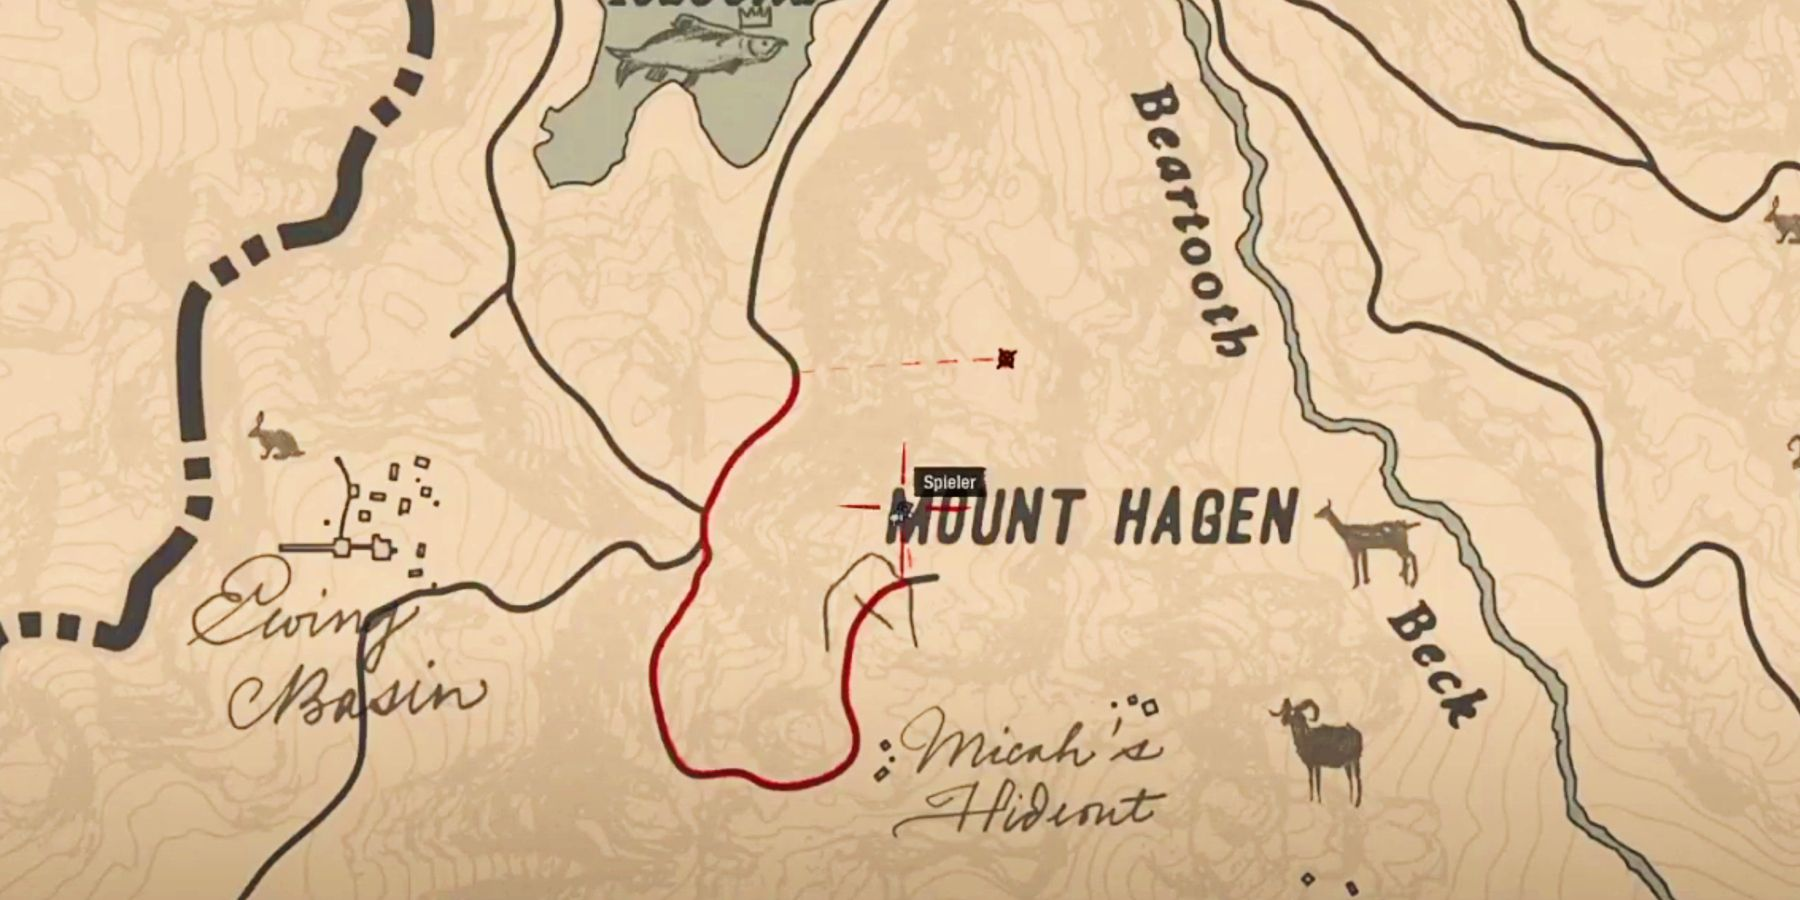 Red Dead Redemption 2: Where to Find the Medieval Knight Helmet